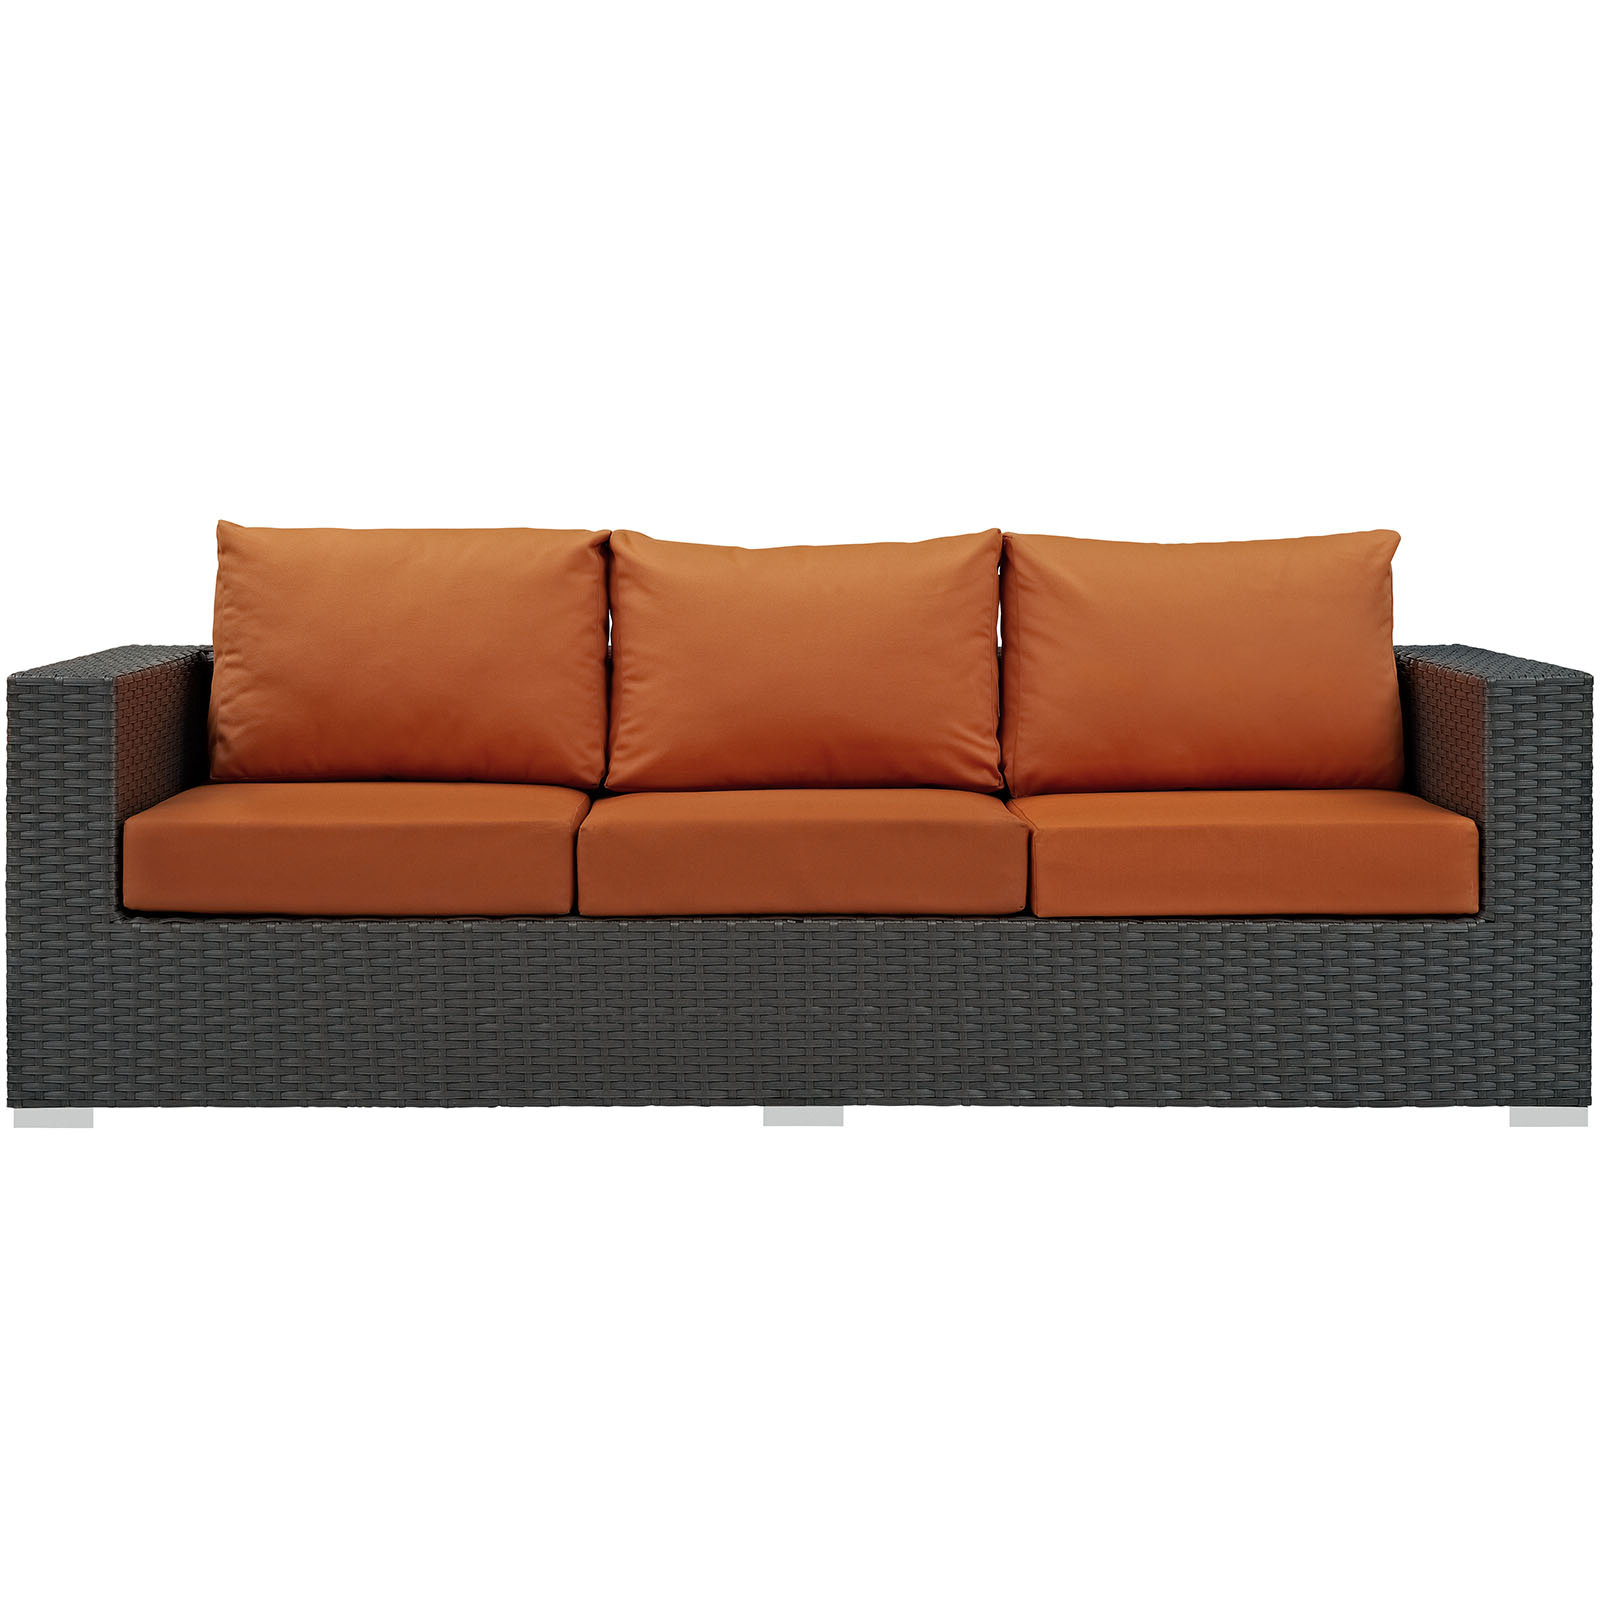 Tripp Sofas With Cushions In Most Recently Released Tripp Sofa With Cushions (View 7 of 25)